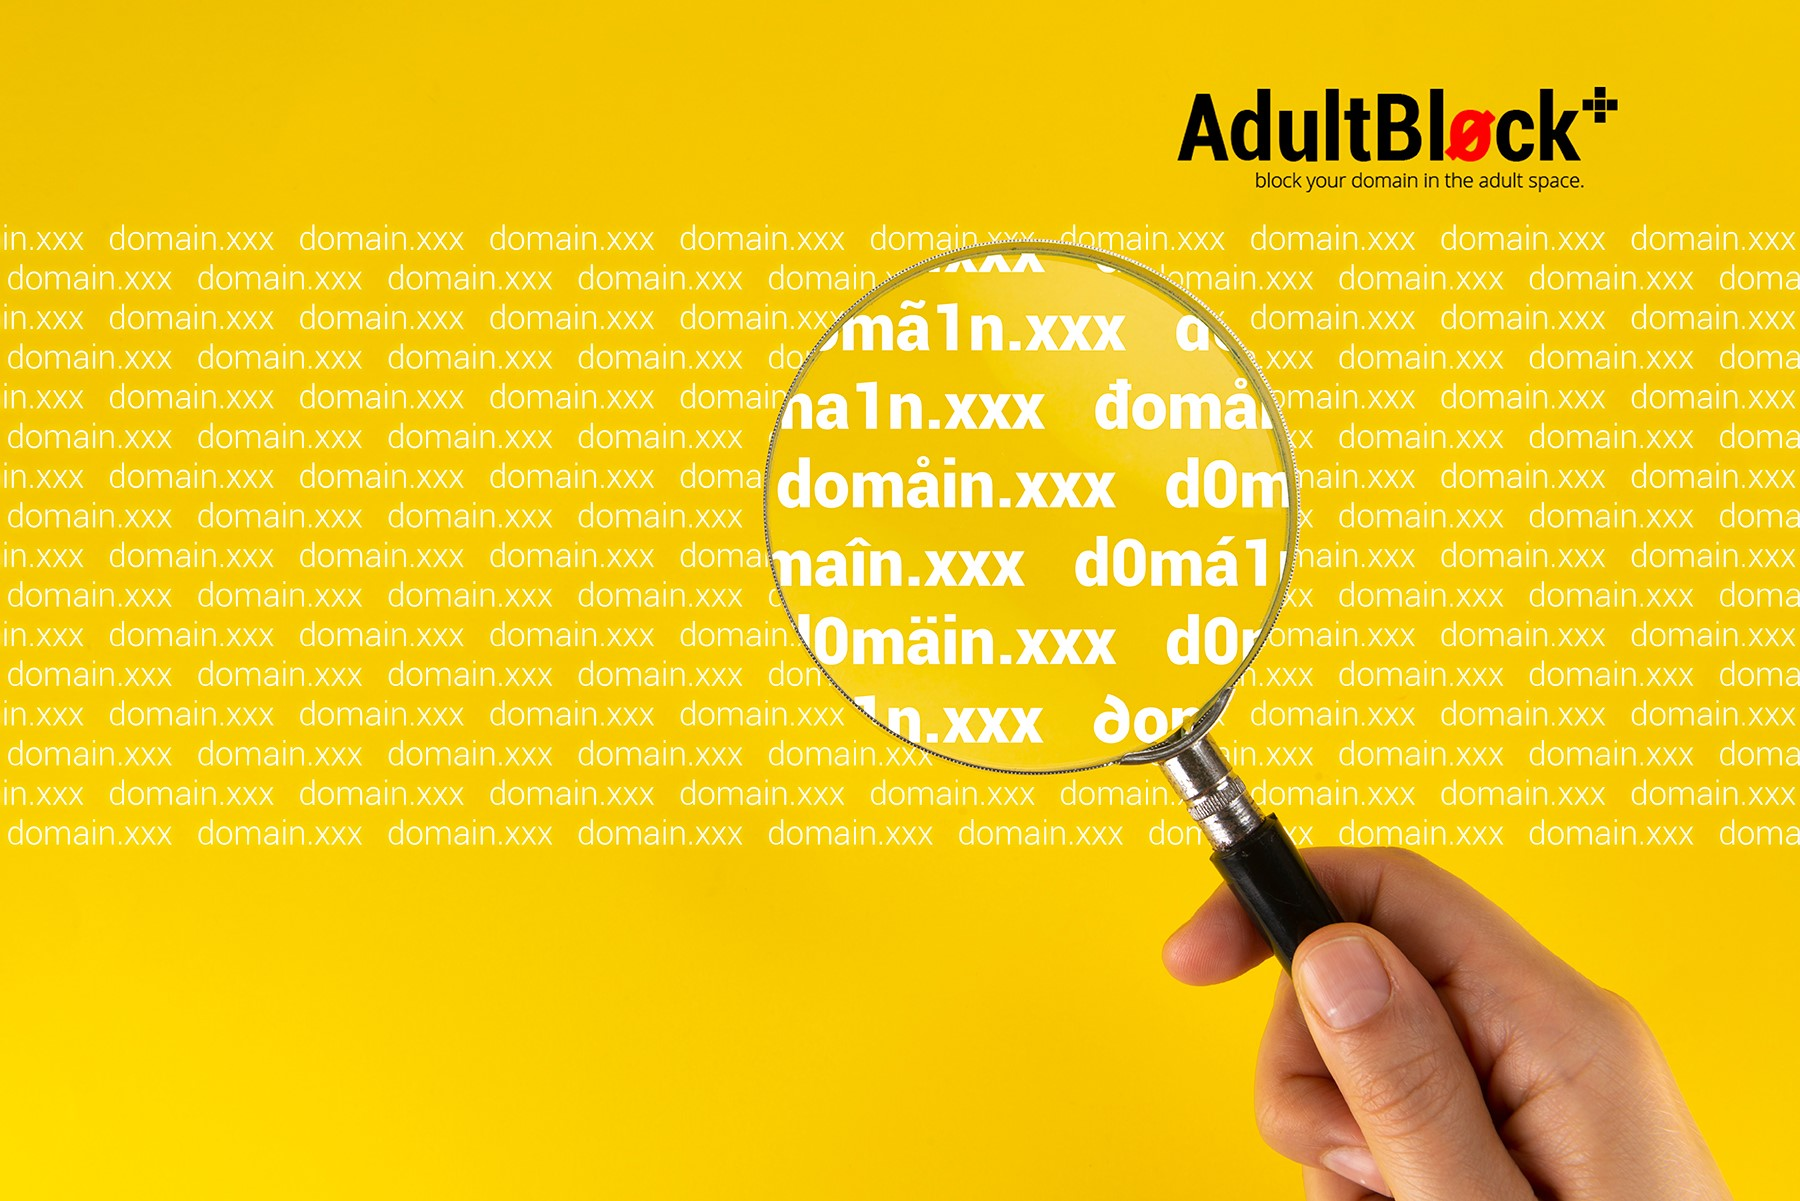 New trademark protection service: AdultBlock & AdultBlock+